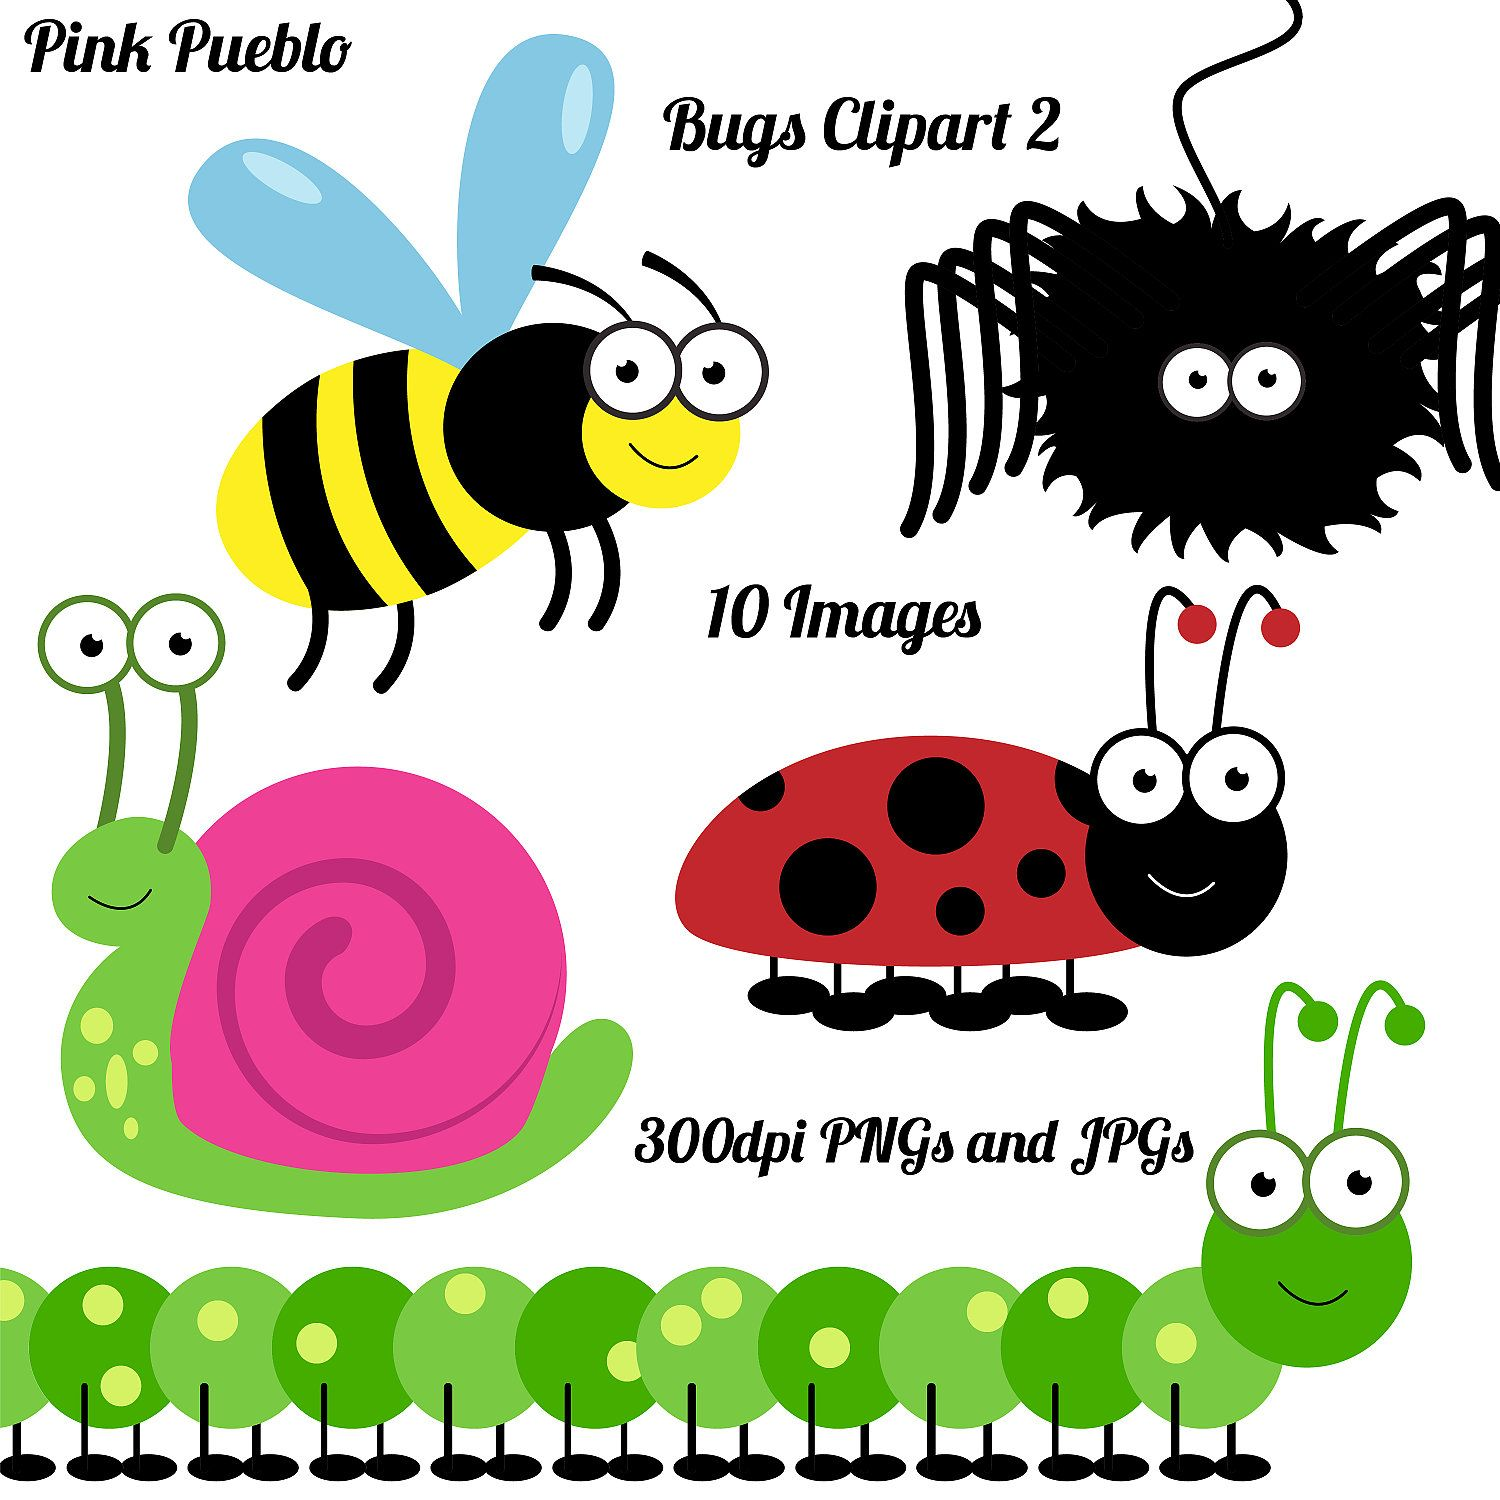 bugs clipart clip art insects clipart clip art bugs by pinkpueblo rh pinterest com insect clipart black and white insect clipart for kids